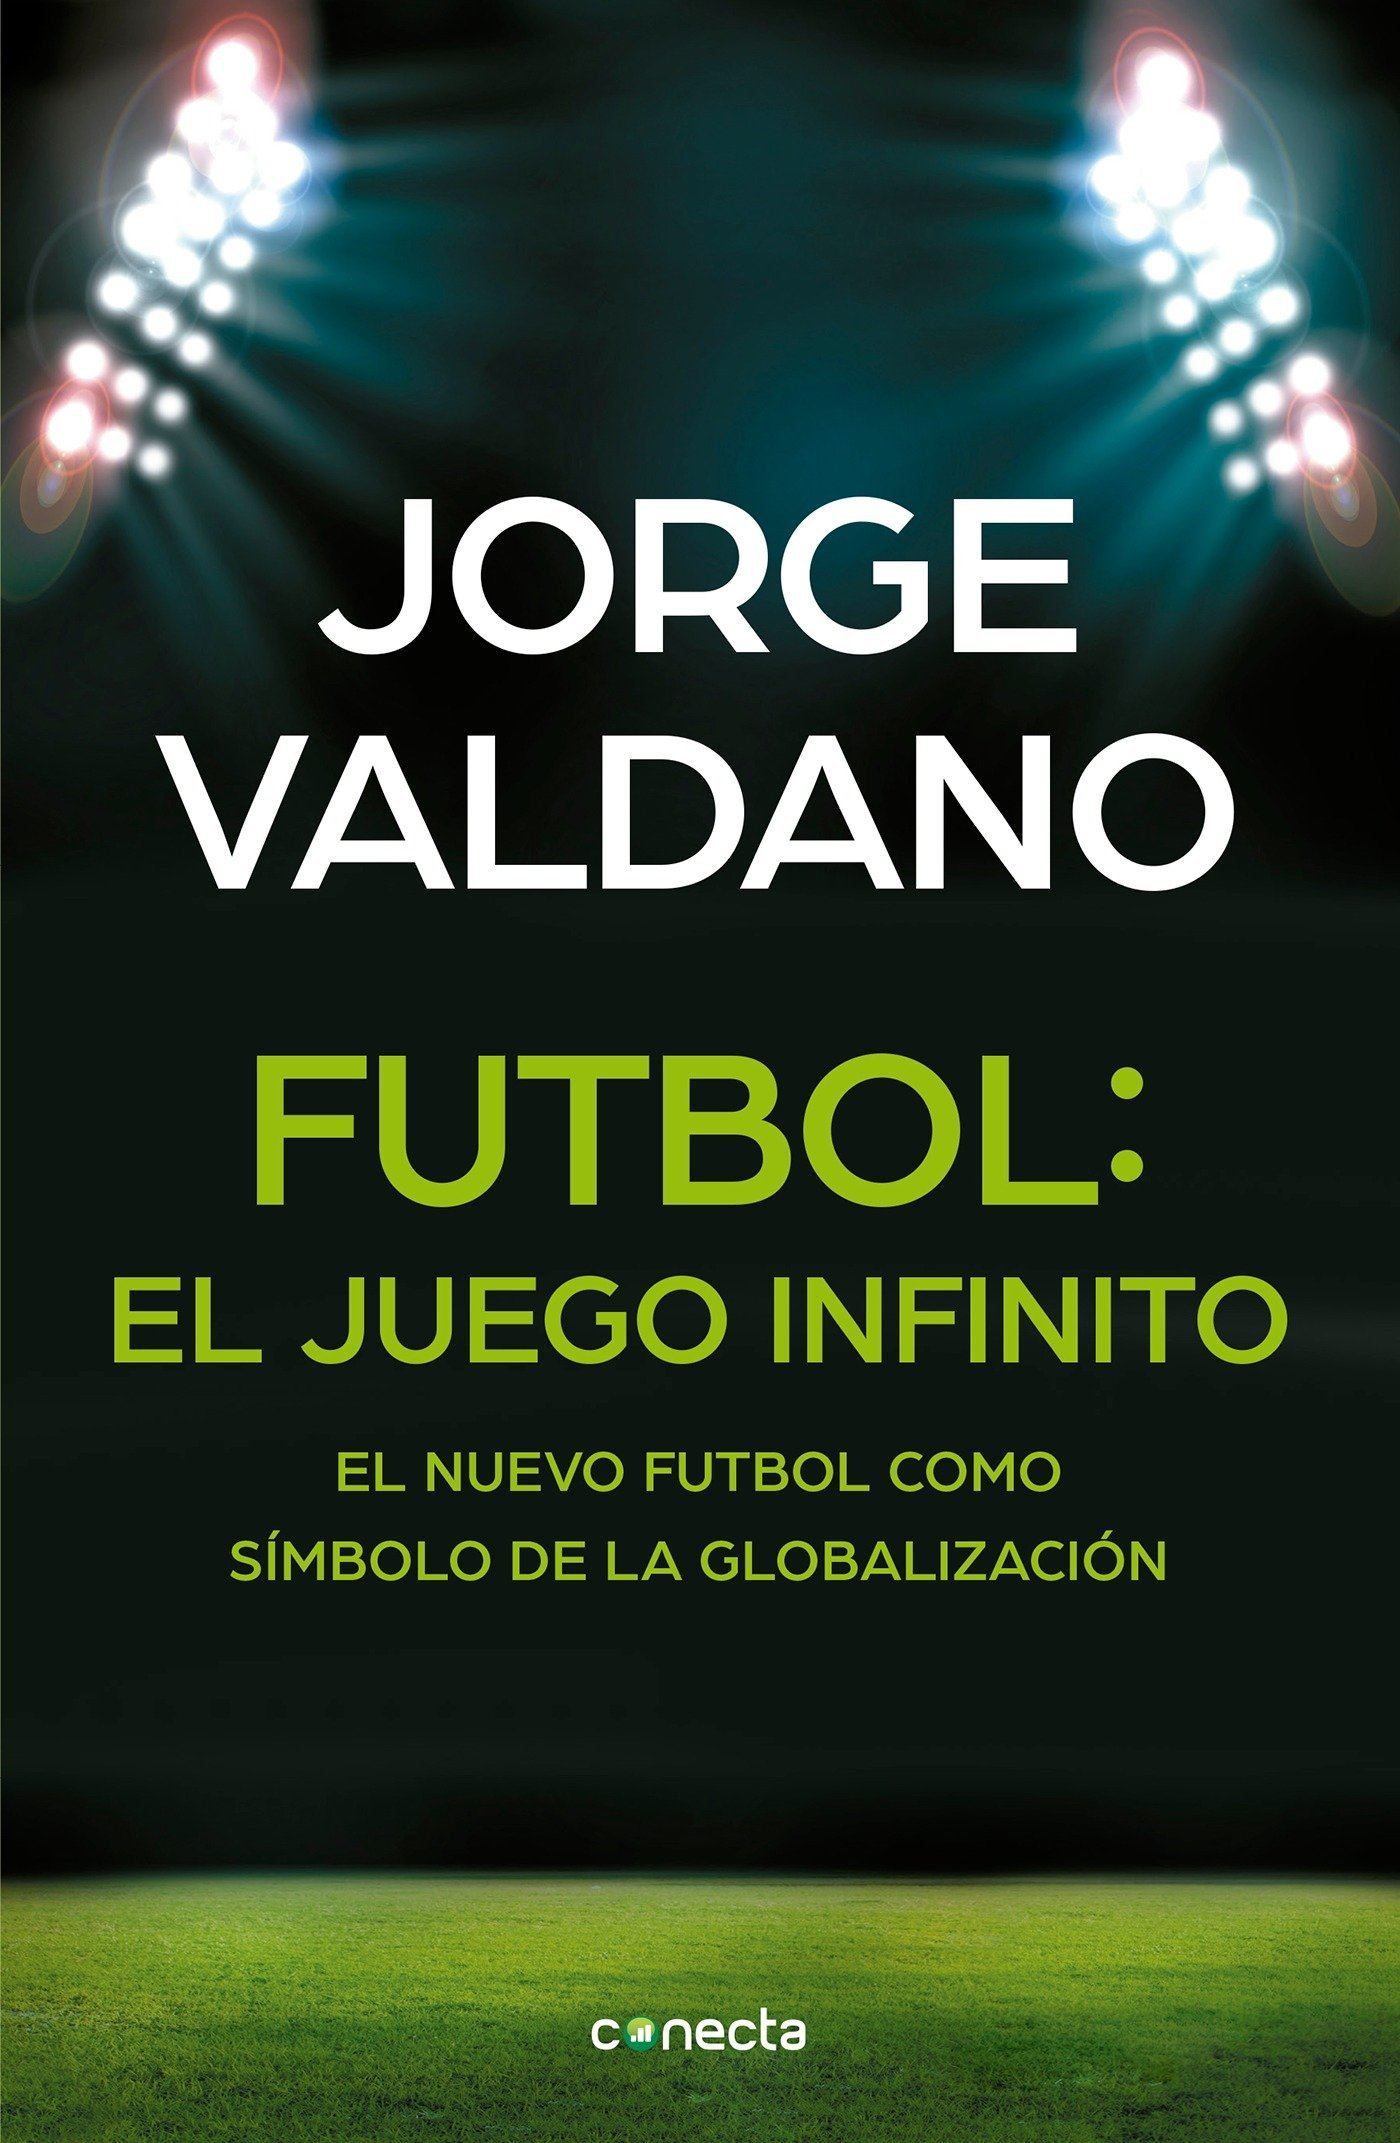 Amazon.com: Fútbol El juego infinito: El nuevo fútbol como símbolo de la globalización / Football Infinite Game: The New Football as a Symbol of ...